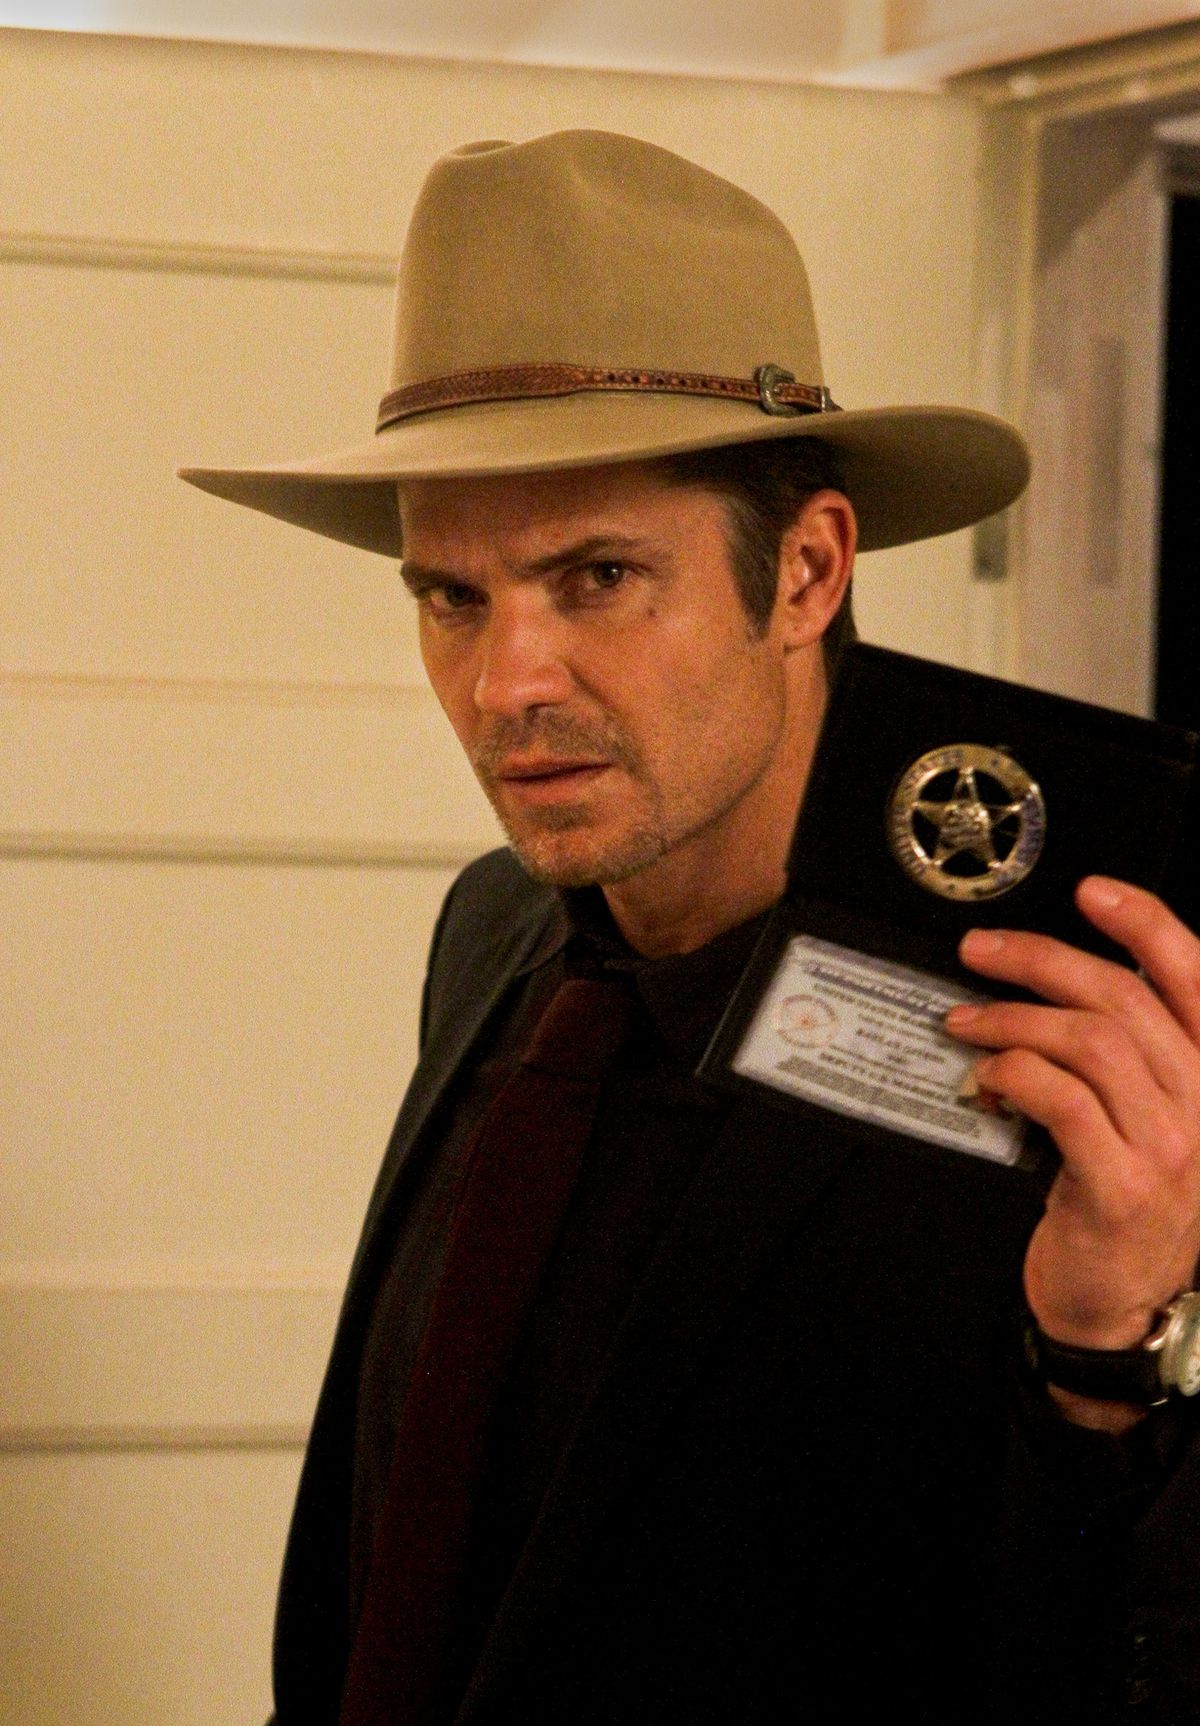 Timothy Olyphant plays Deputy US Marshall Raylan Givens on location on the set in Newhall of Justif